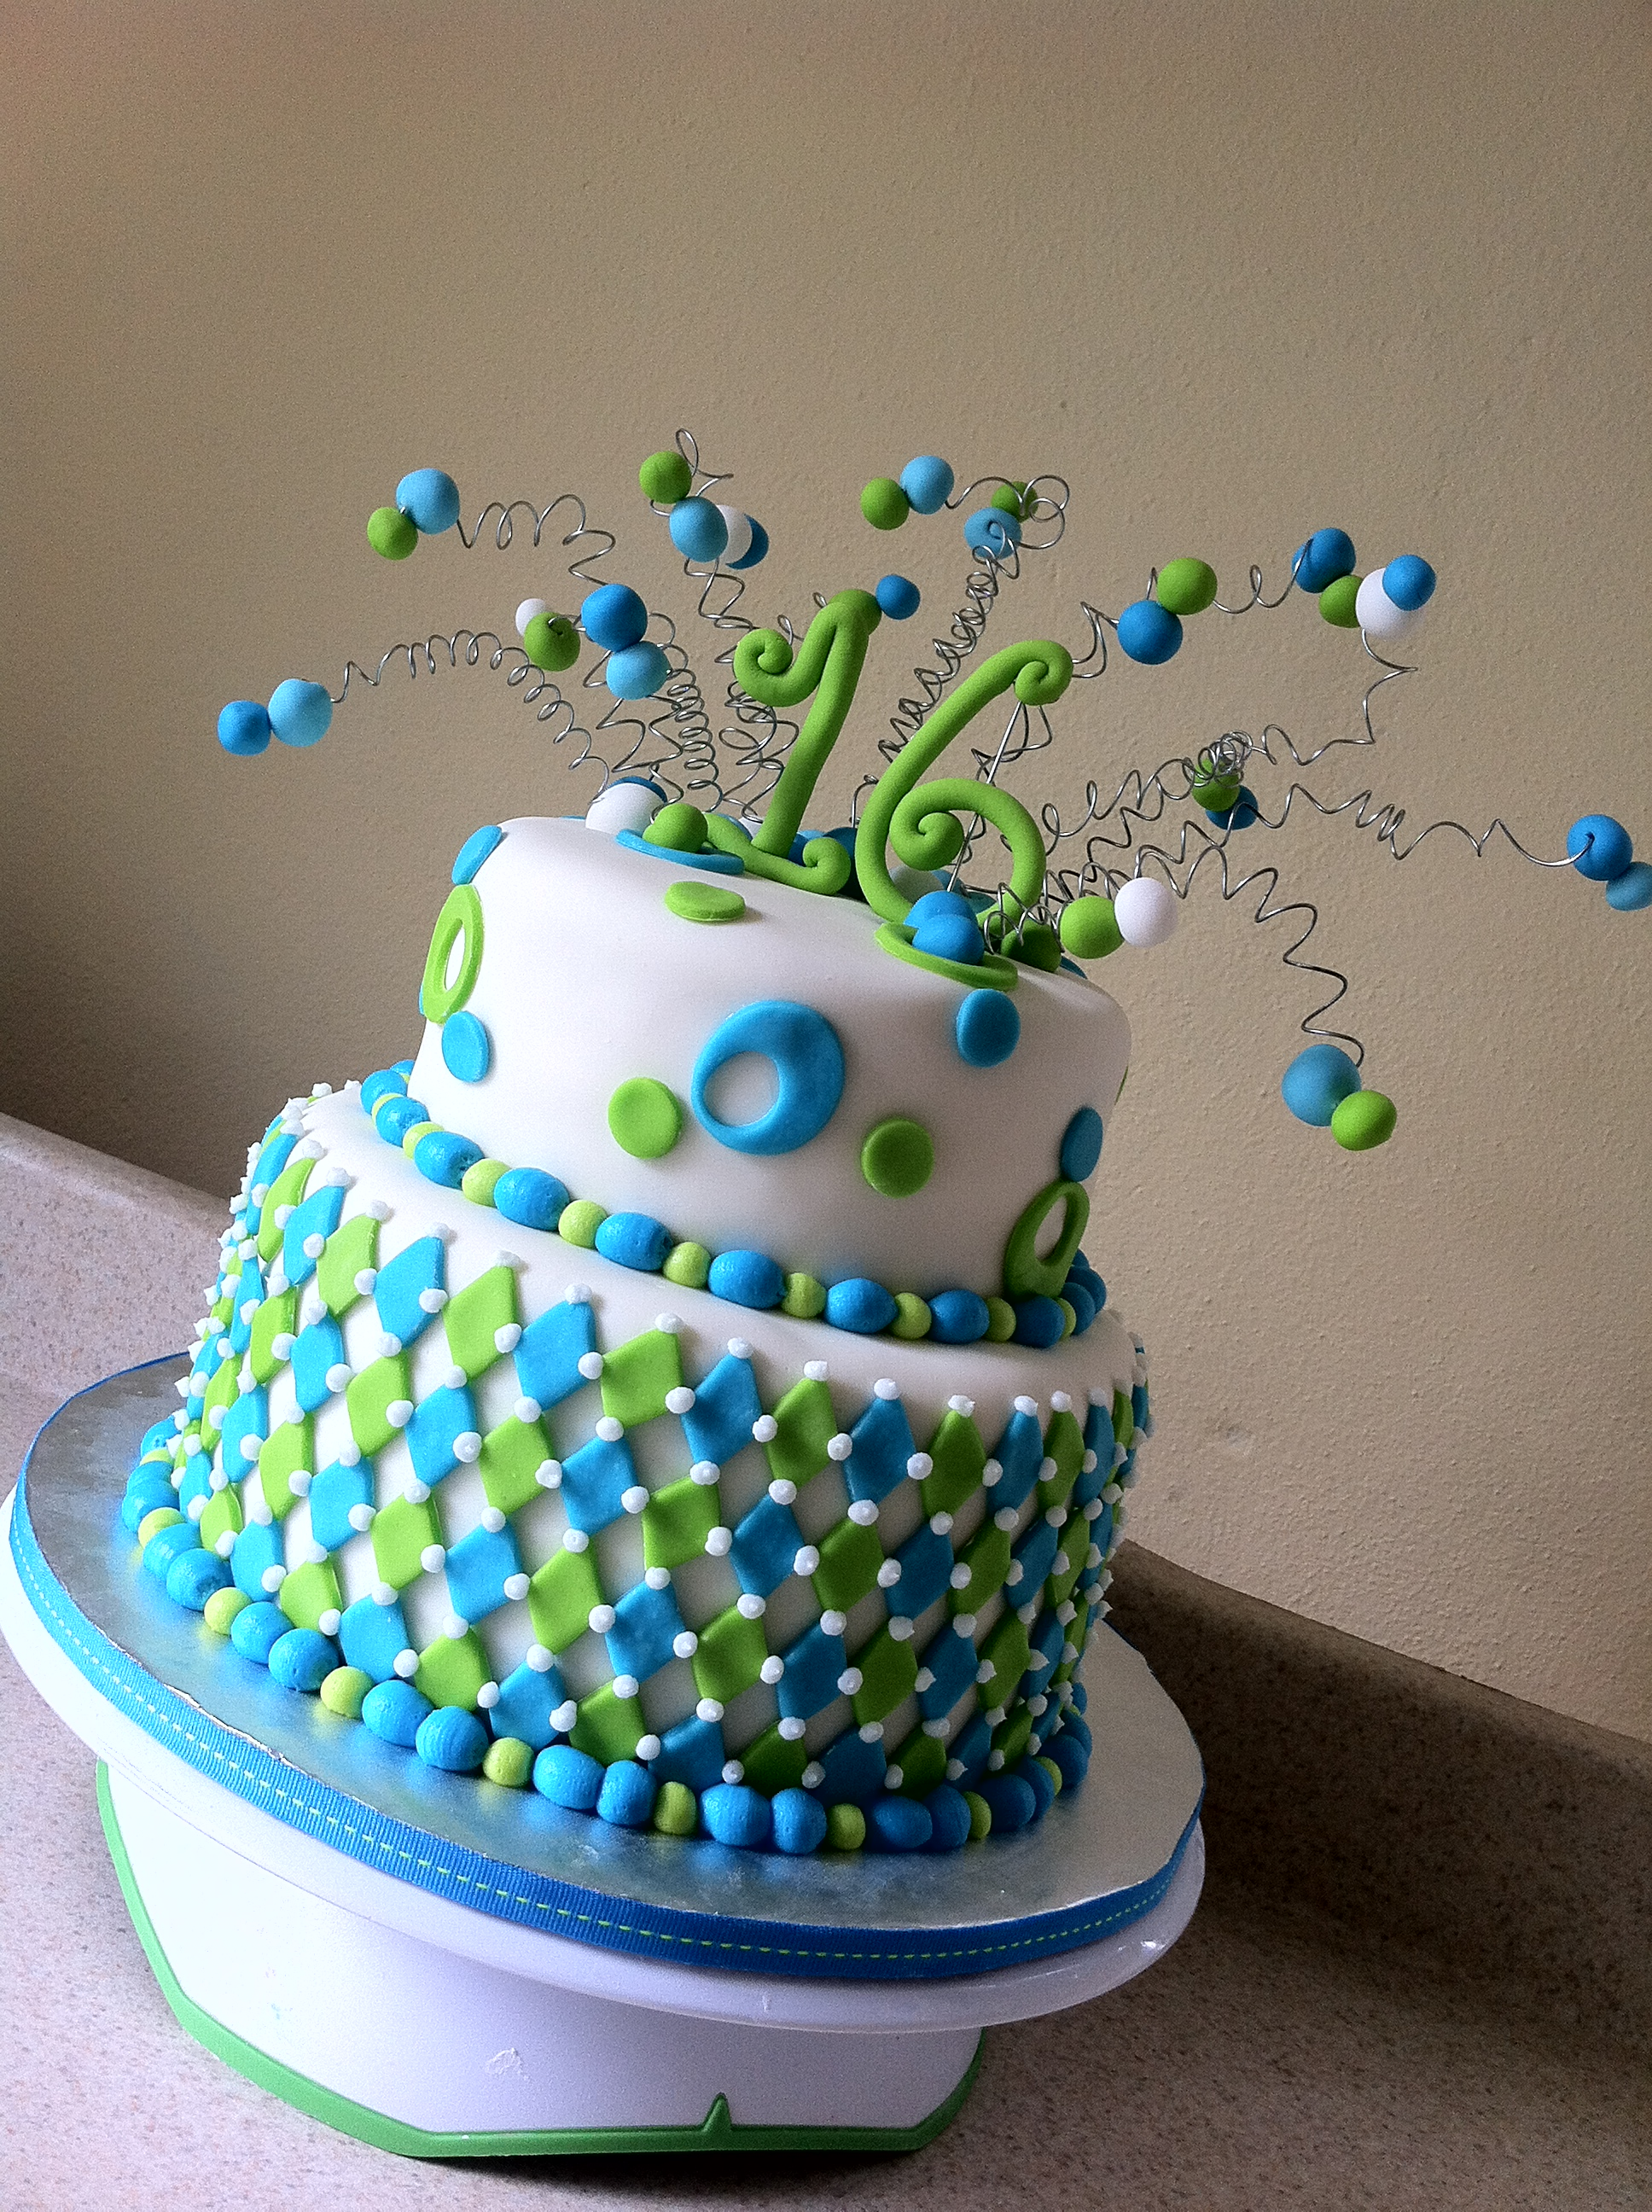 Lime Aqua Harlequin 16 Birthday Cake Published November 12 2017 At 1936 2592